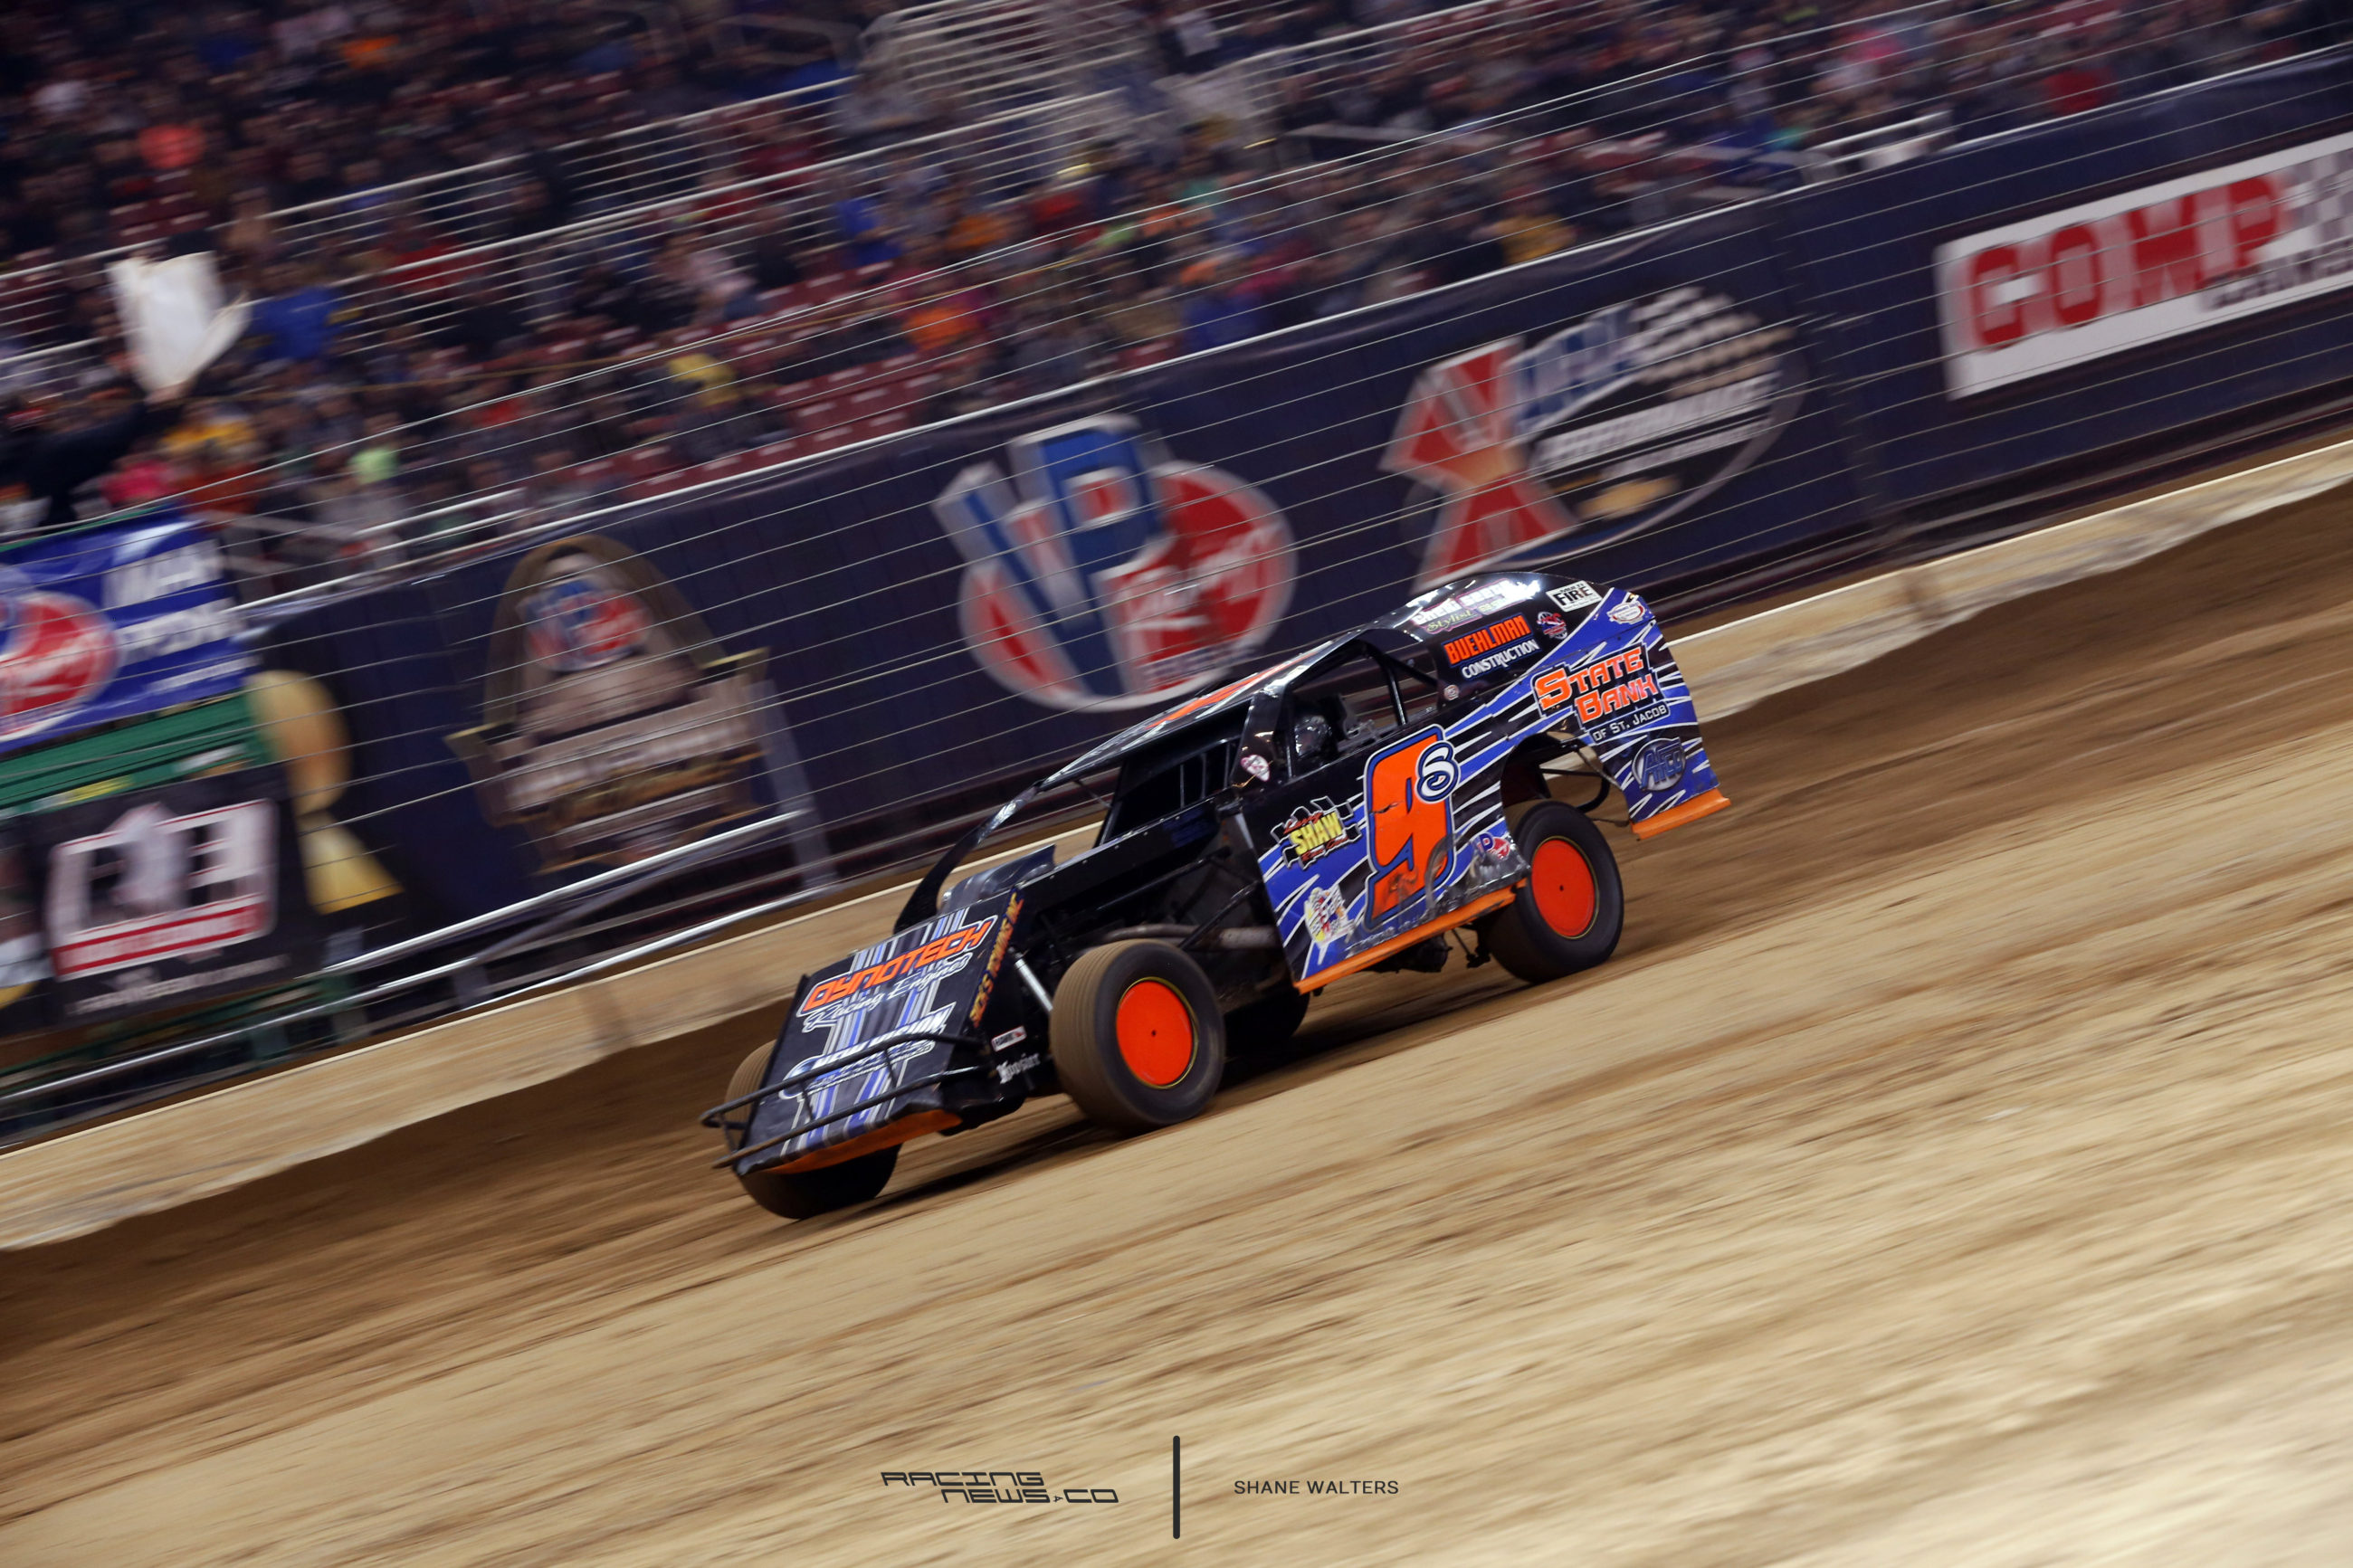 2016 Gateway Dirt Nationals Results - Saturday - Dirt Modifieds - Tommie Seets Jr 9578